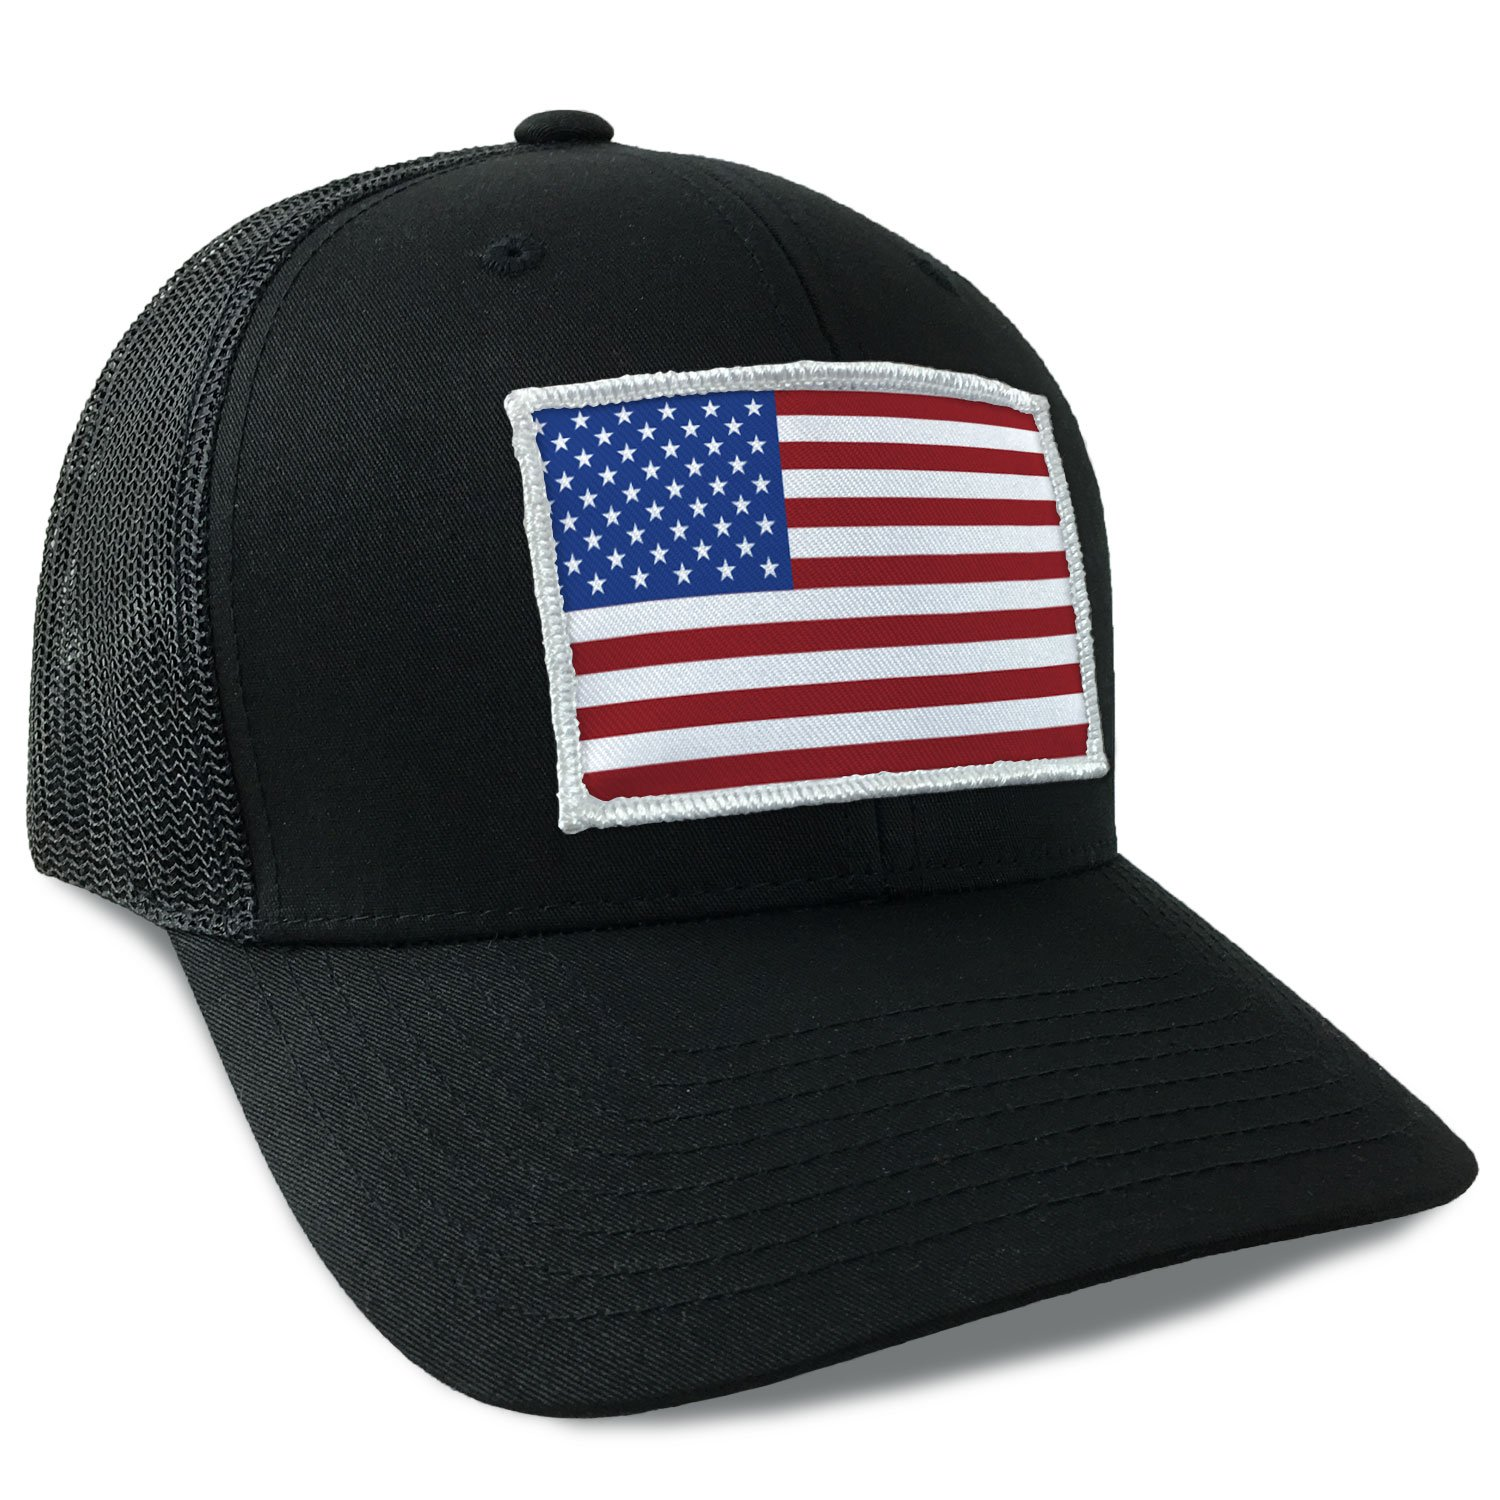 817fdf73cc8 Amazon.com  American Flag USA Flexfit Mesh Tactical Trucker Snapback Hat  Red White and Blue  Clothing